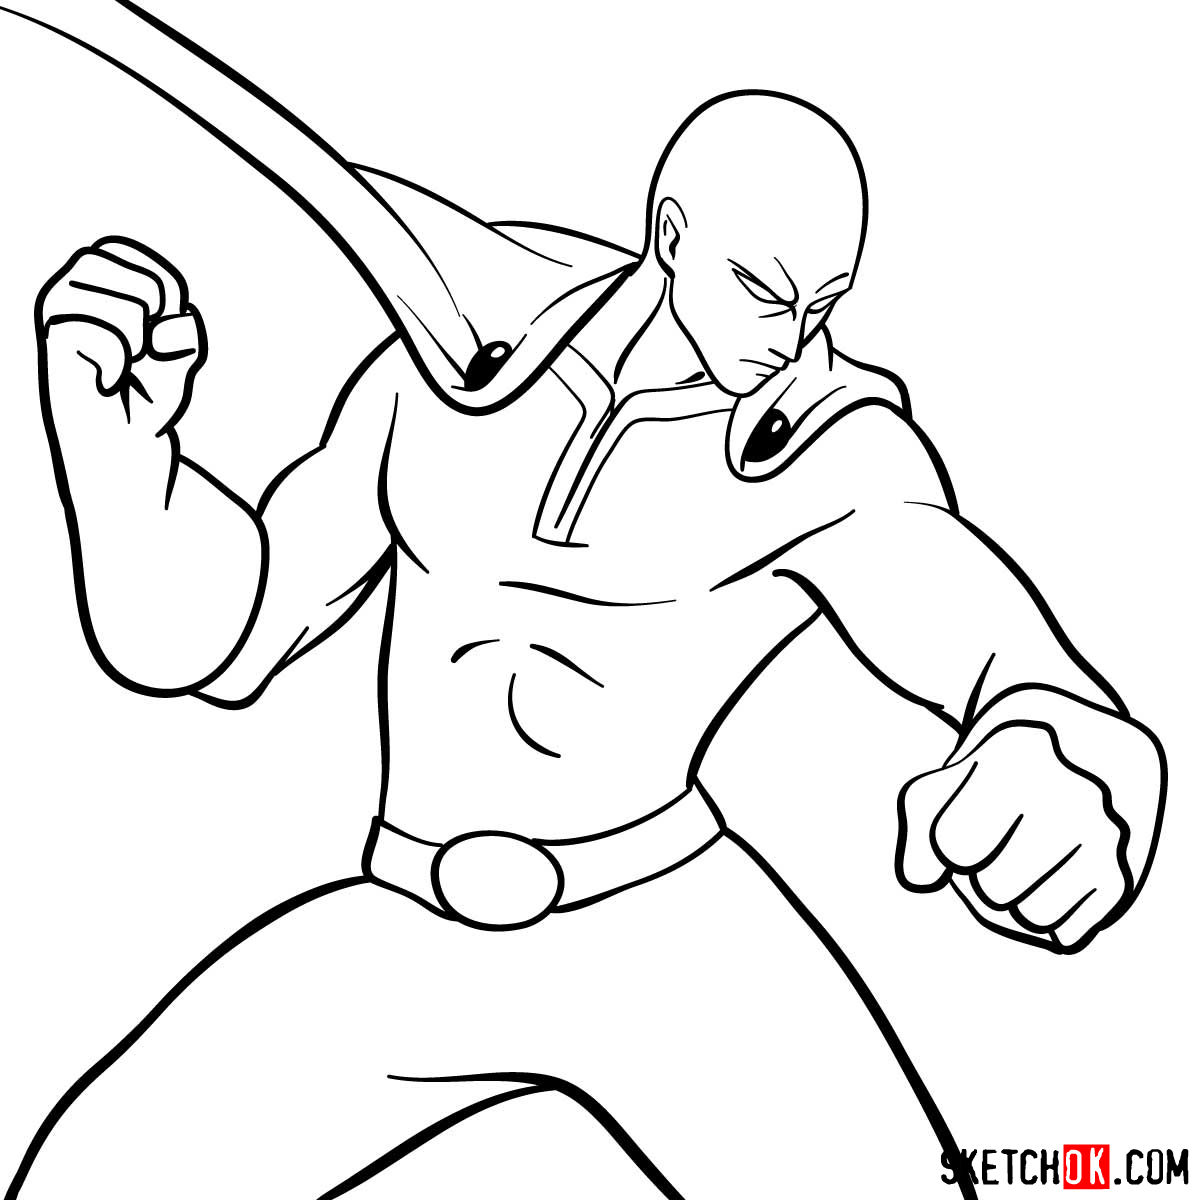 How to draw fighting Saitama in 12 steps